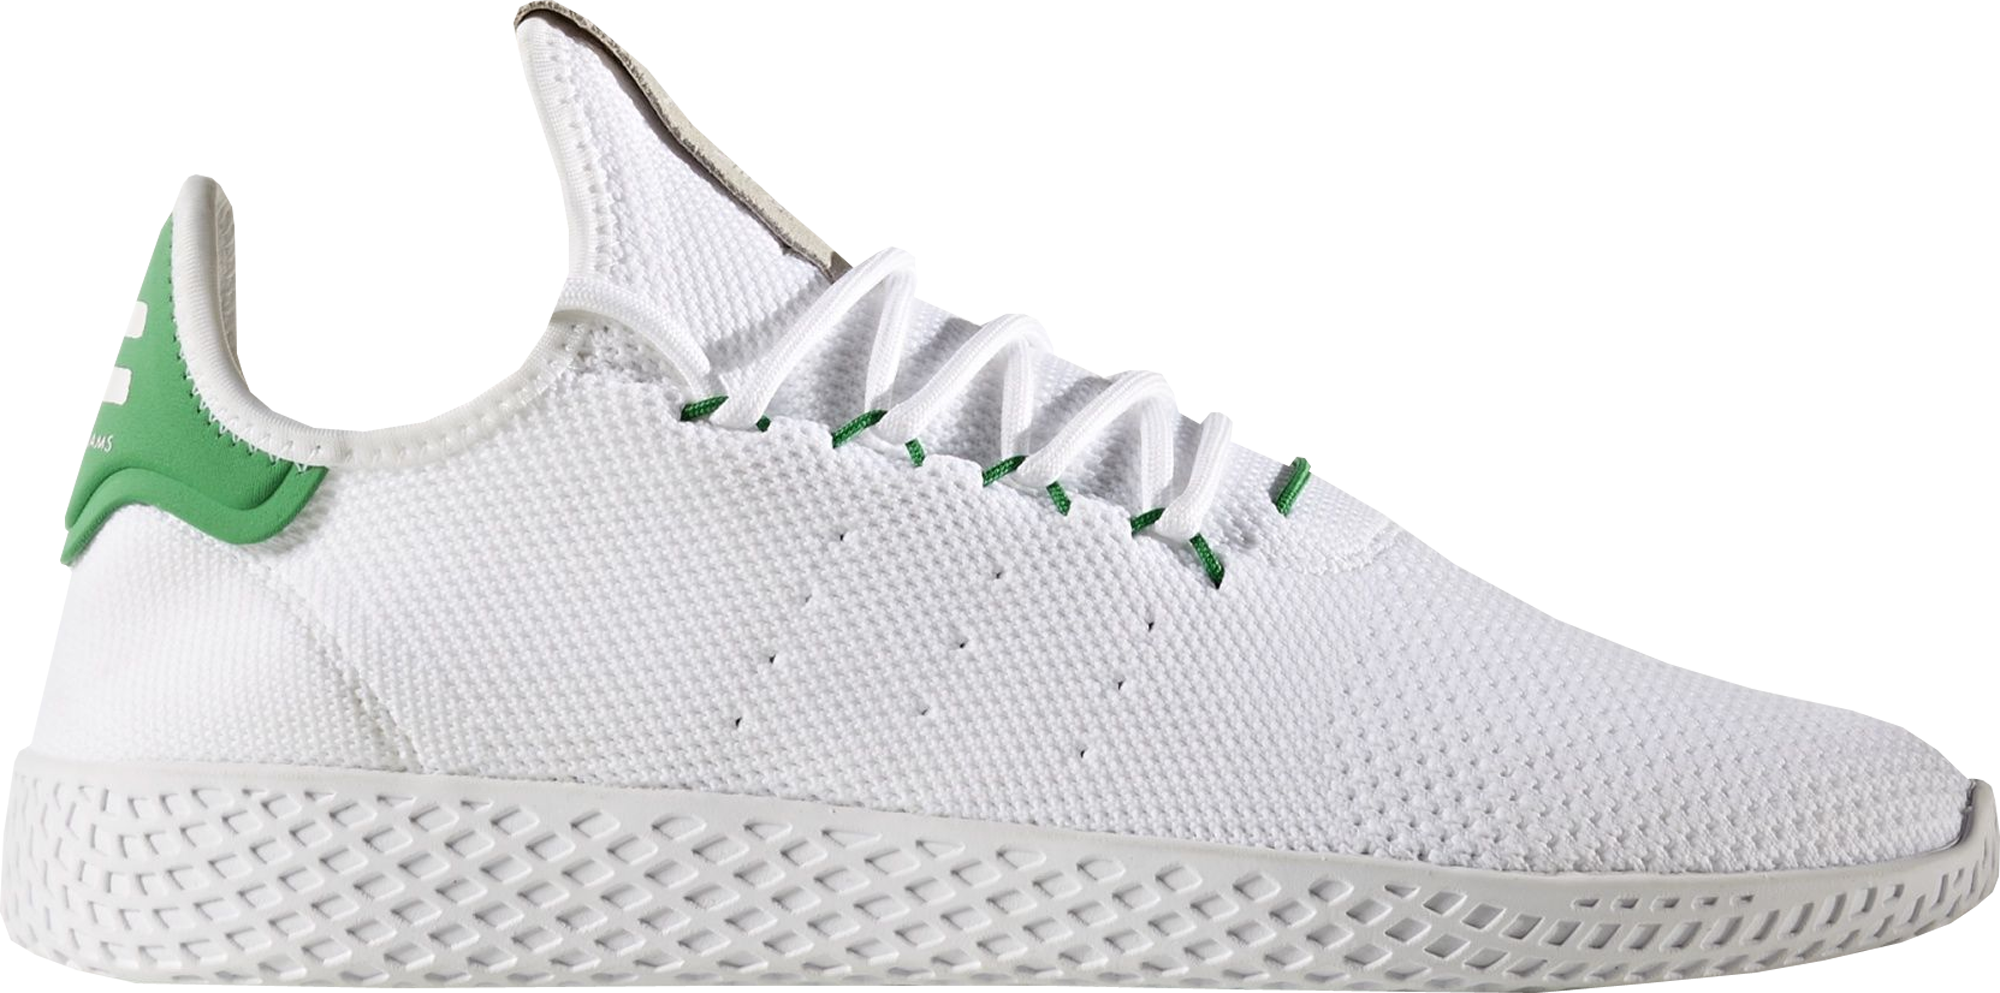 e2bdf1781cad6 Pharrell Williams x adidas Tennis Hu White Green - StockX News